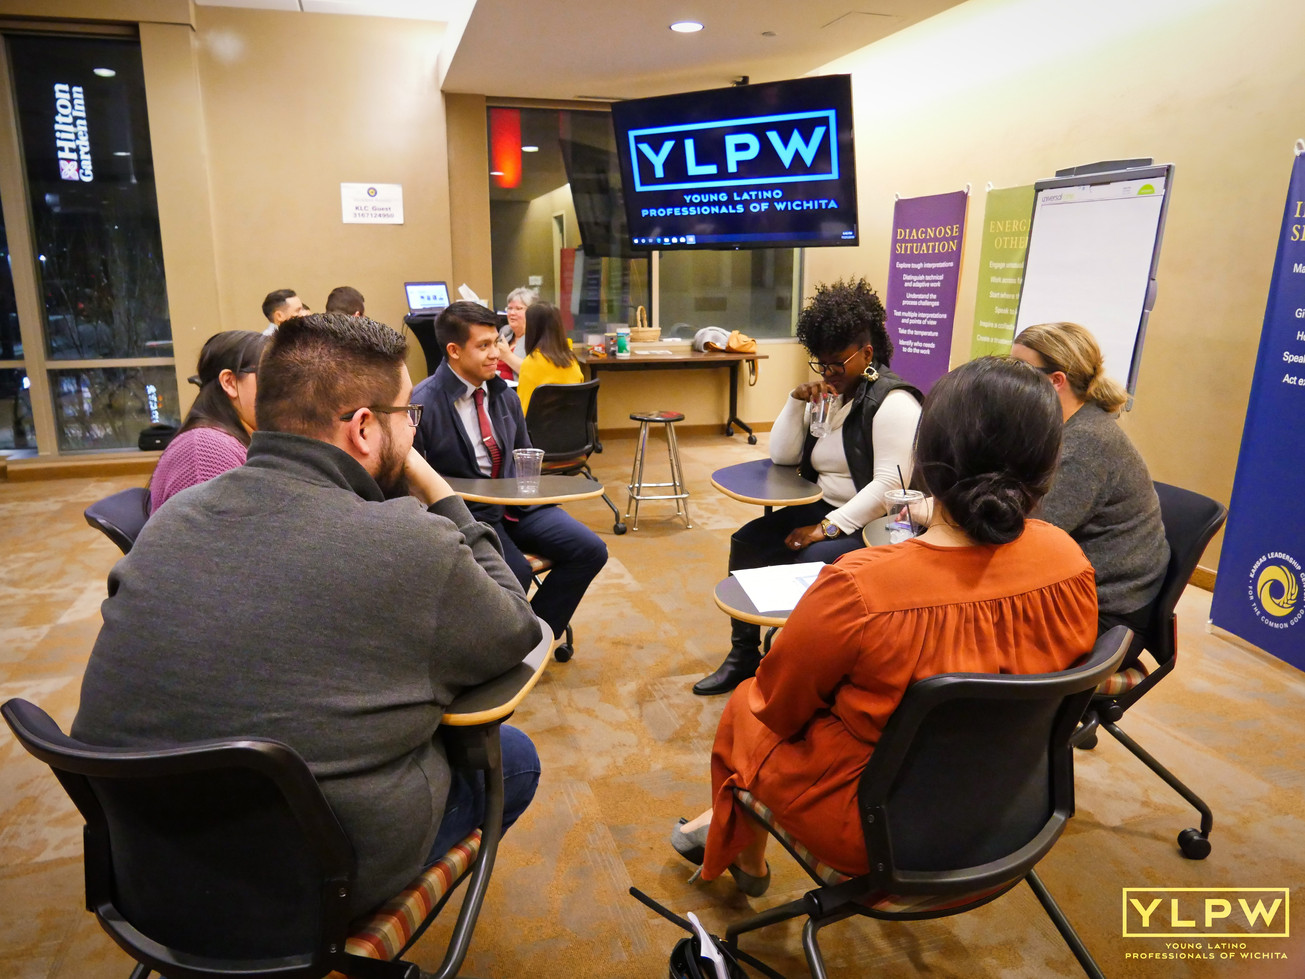 YLPW_Boards_Event_11_21_19_AP_38.jpg